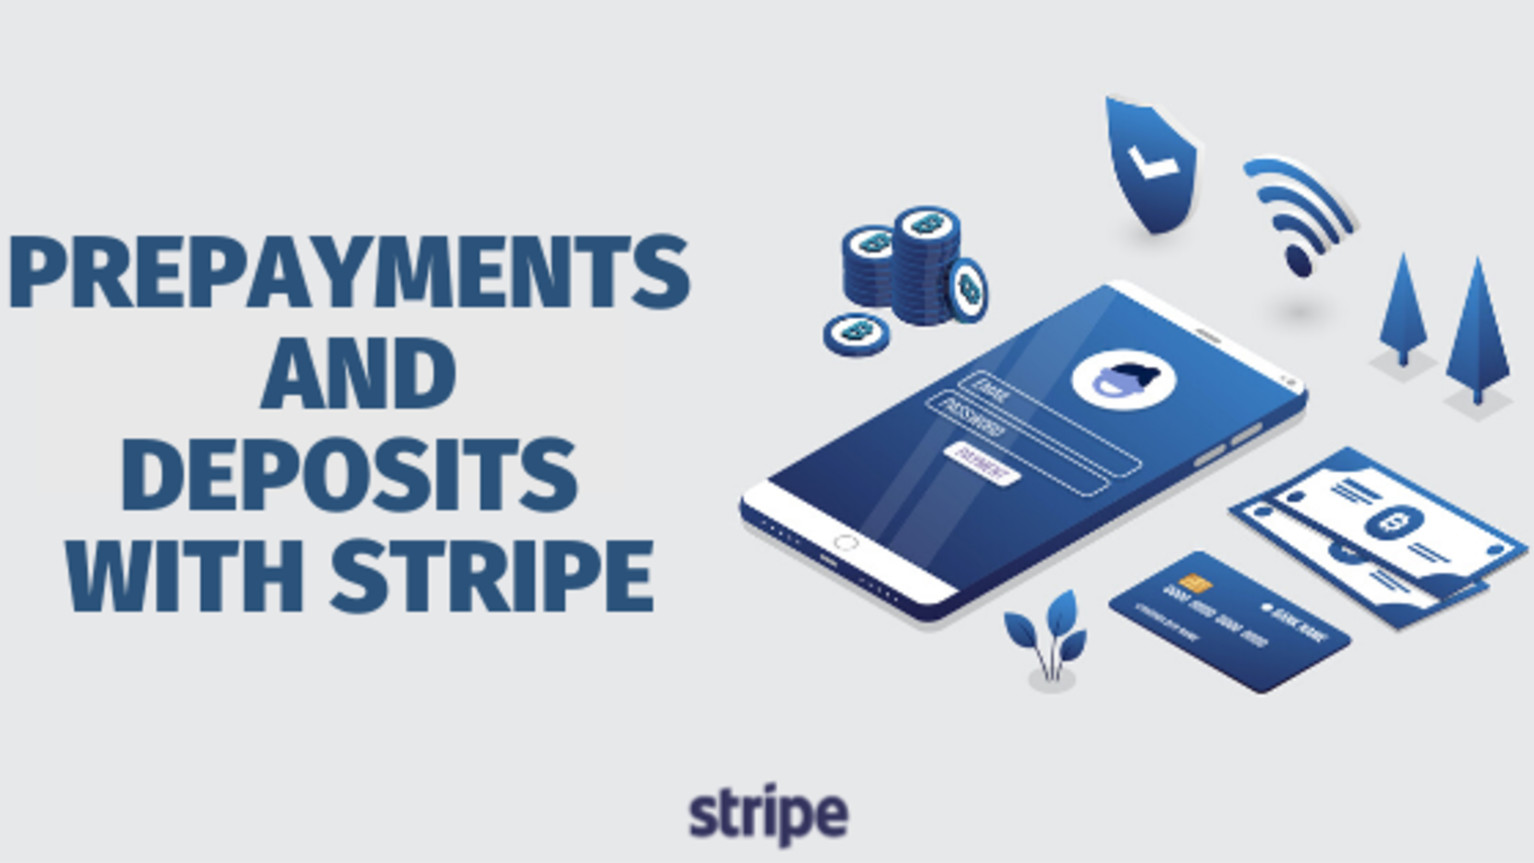 Prepayments and Deposits with Stripe